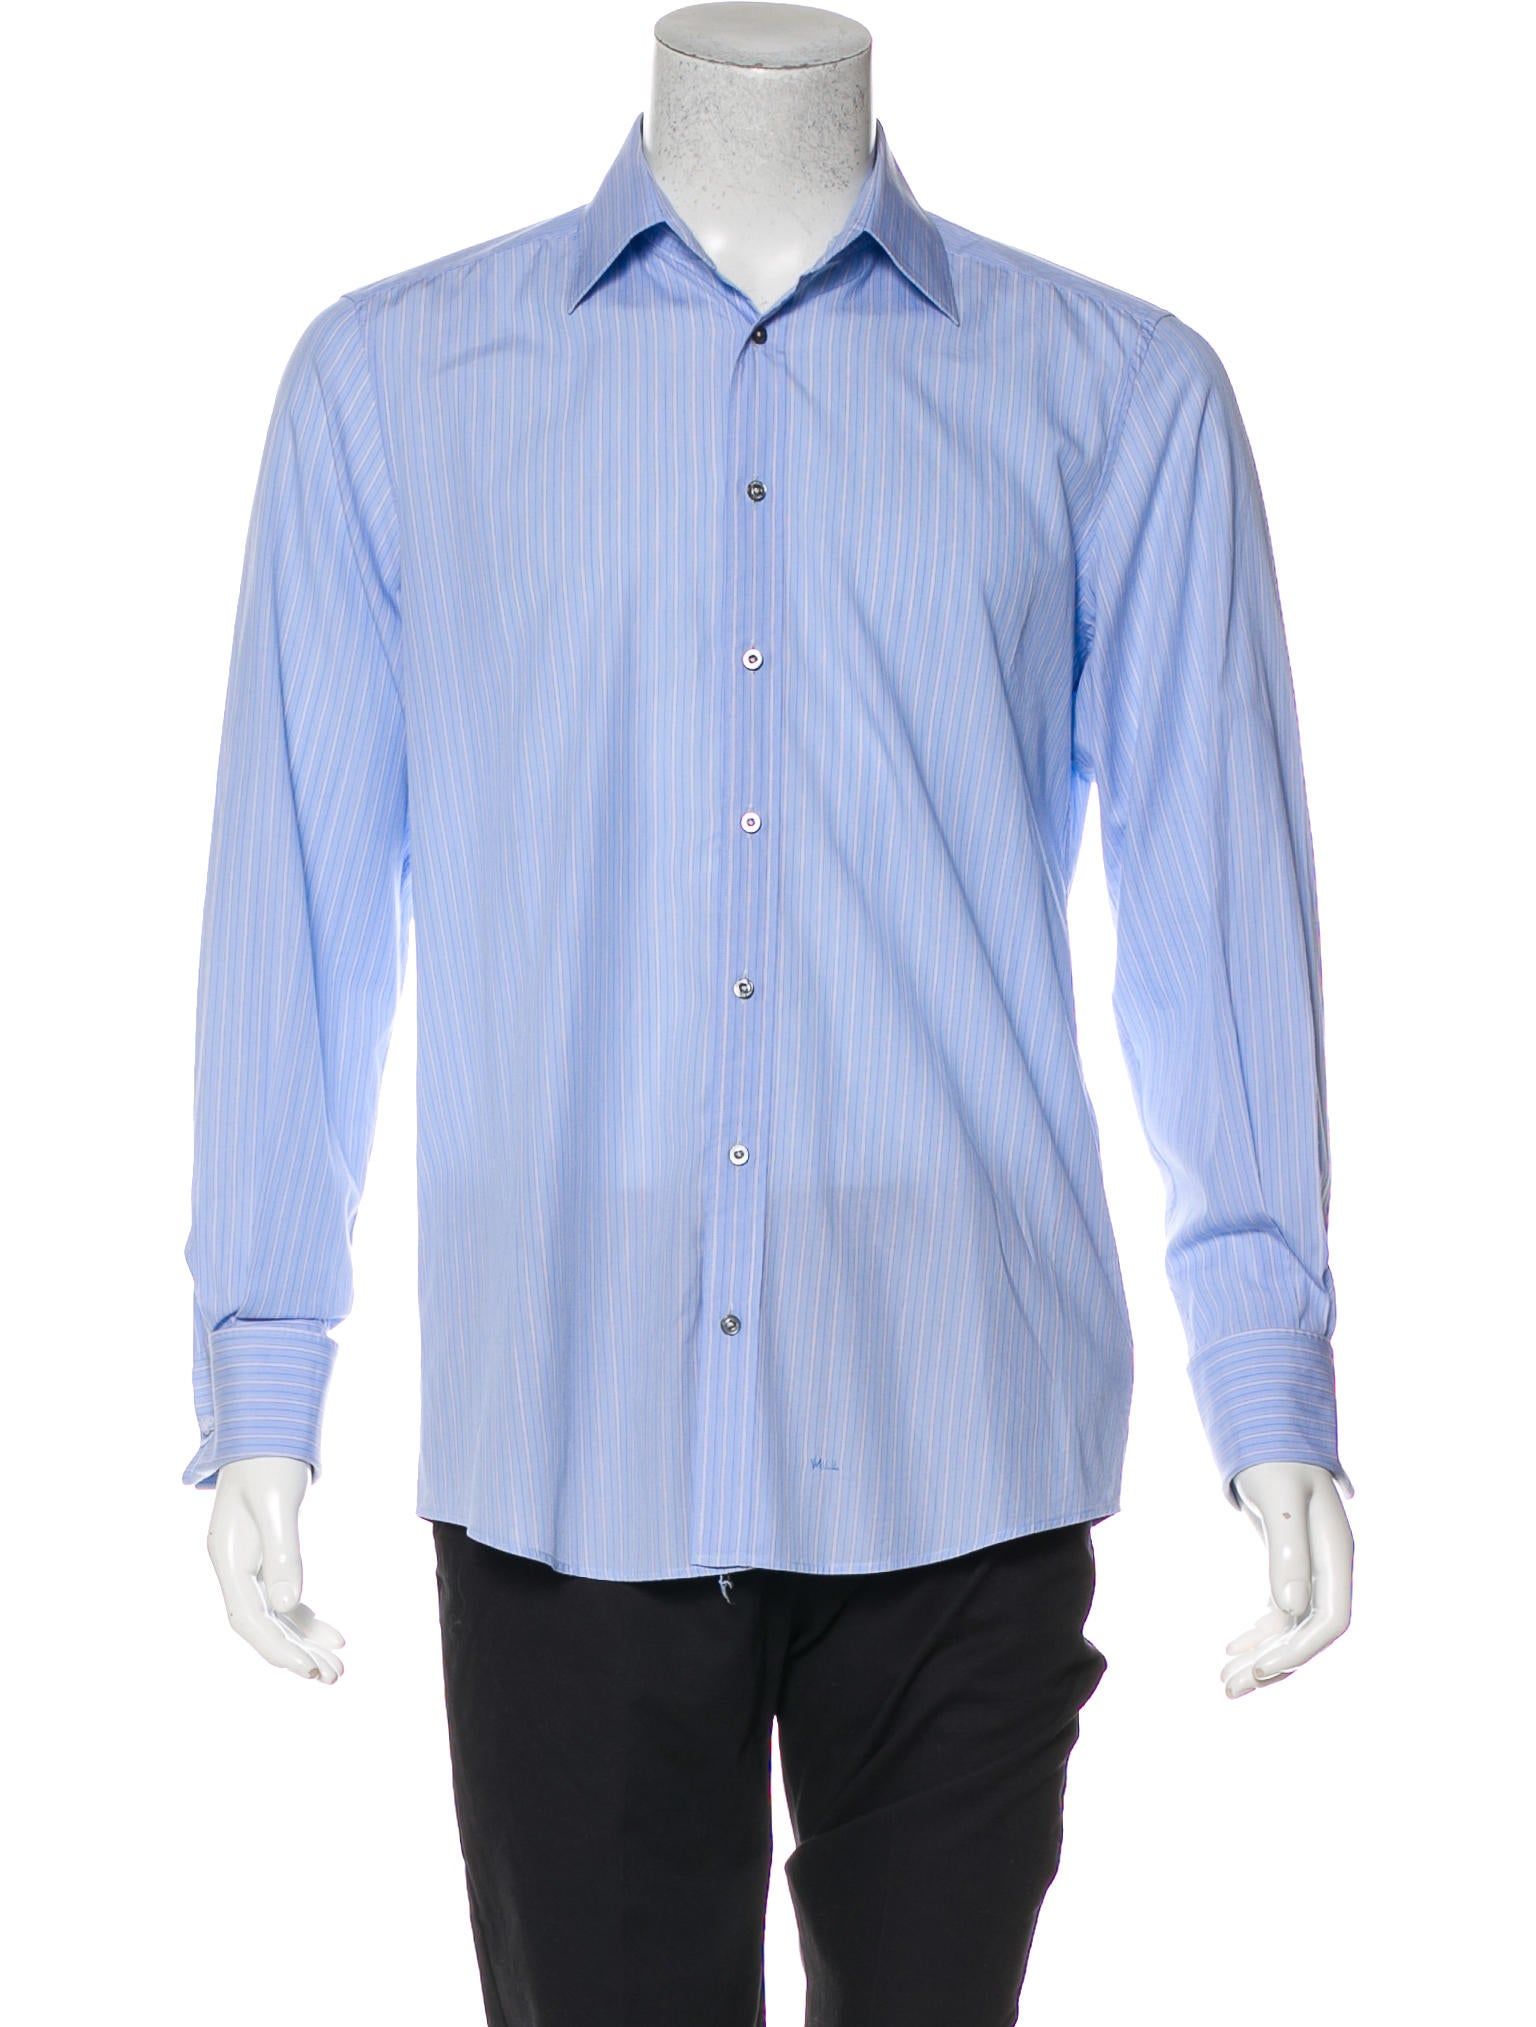 Gucci French Cuff Dress Shirt Clothing Guc222282 The Realreal